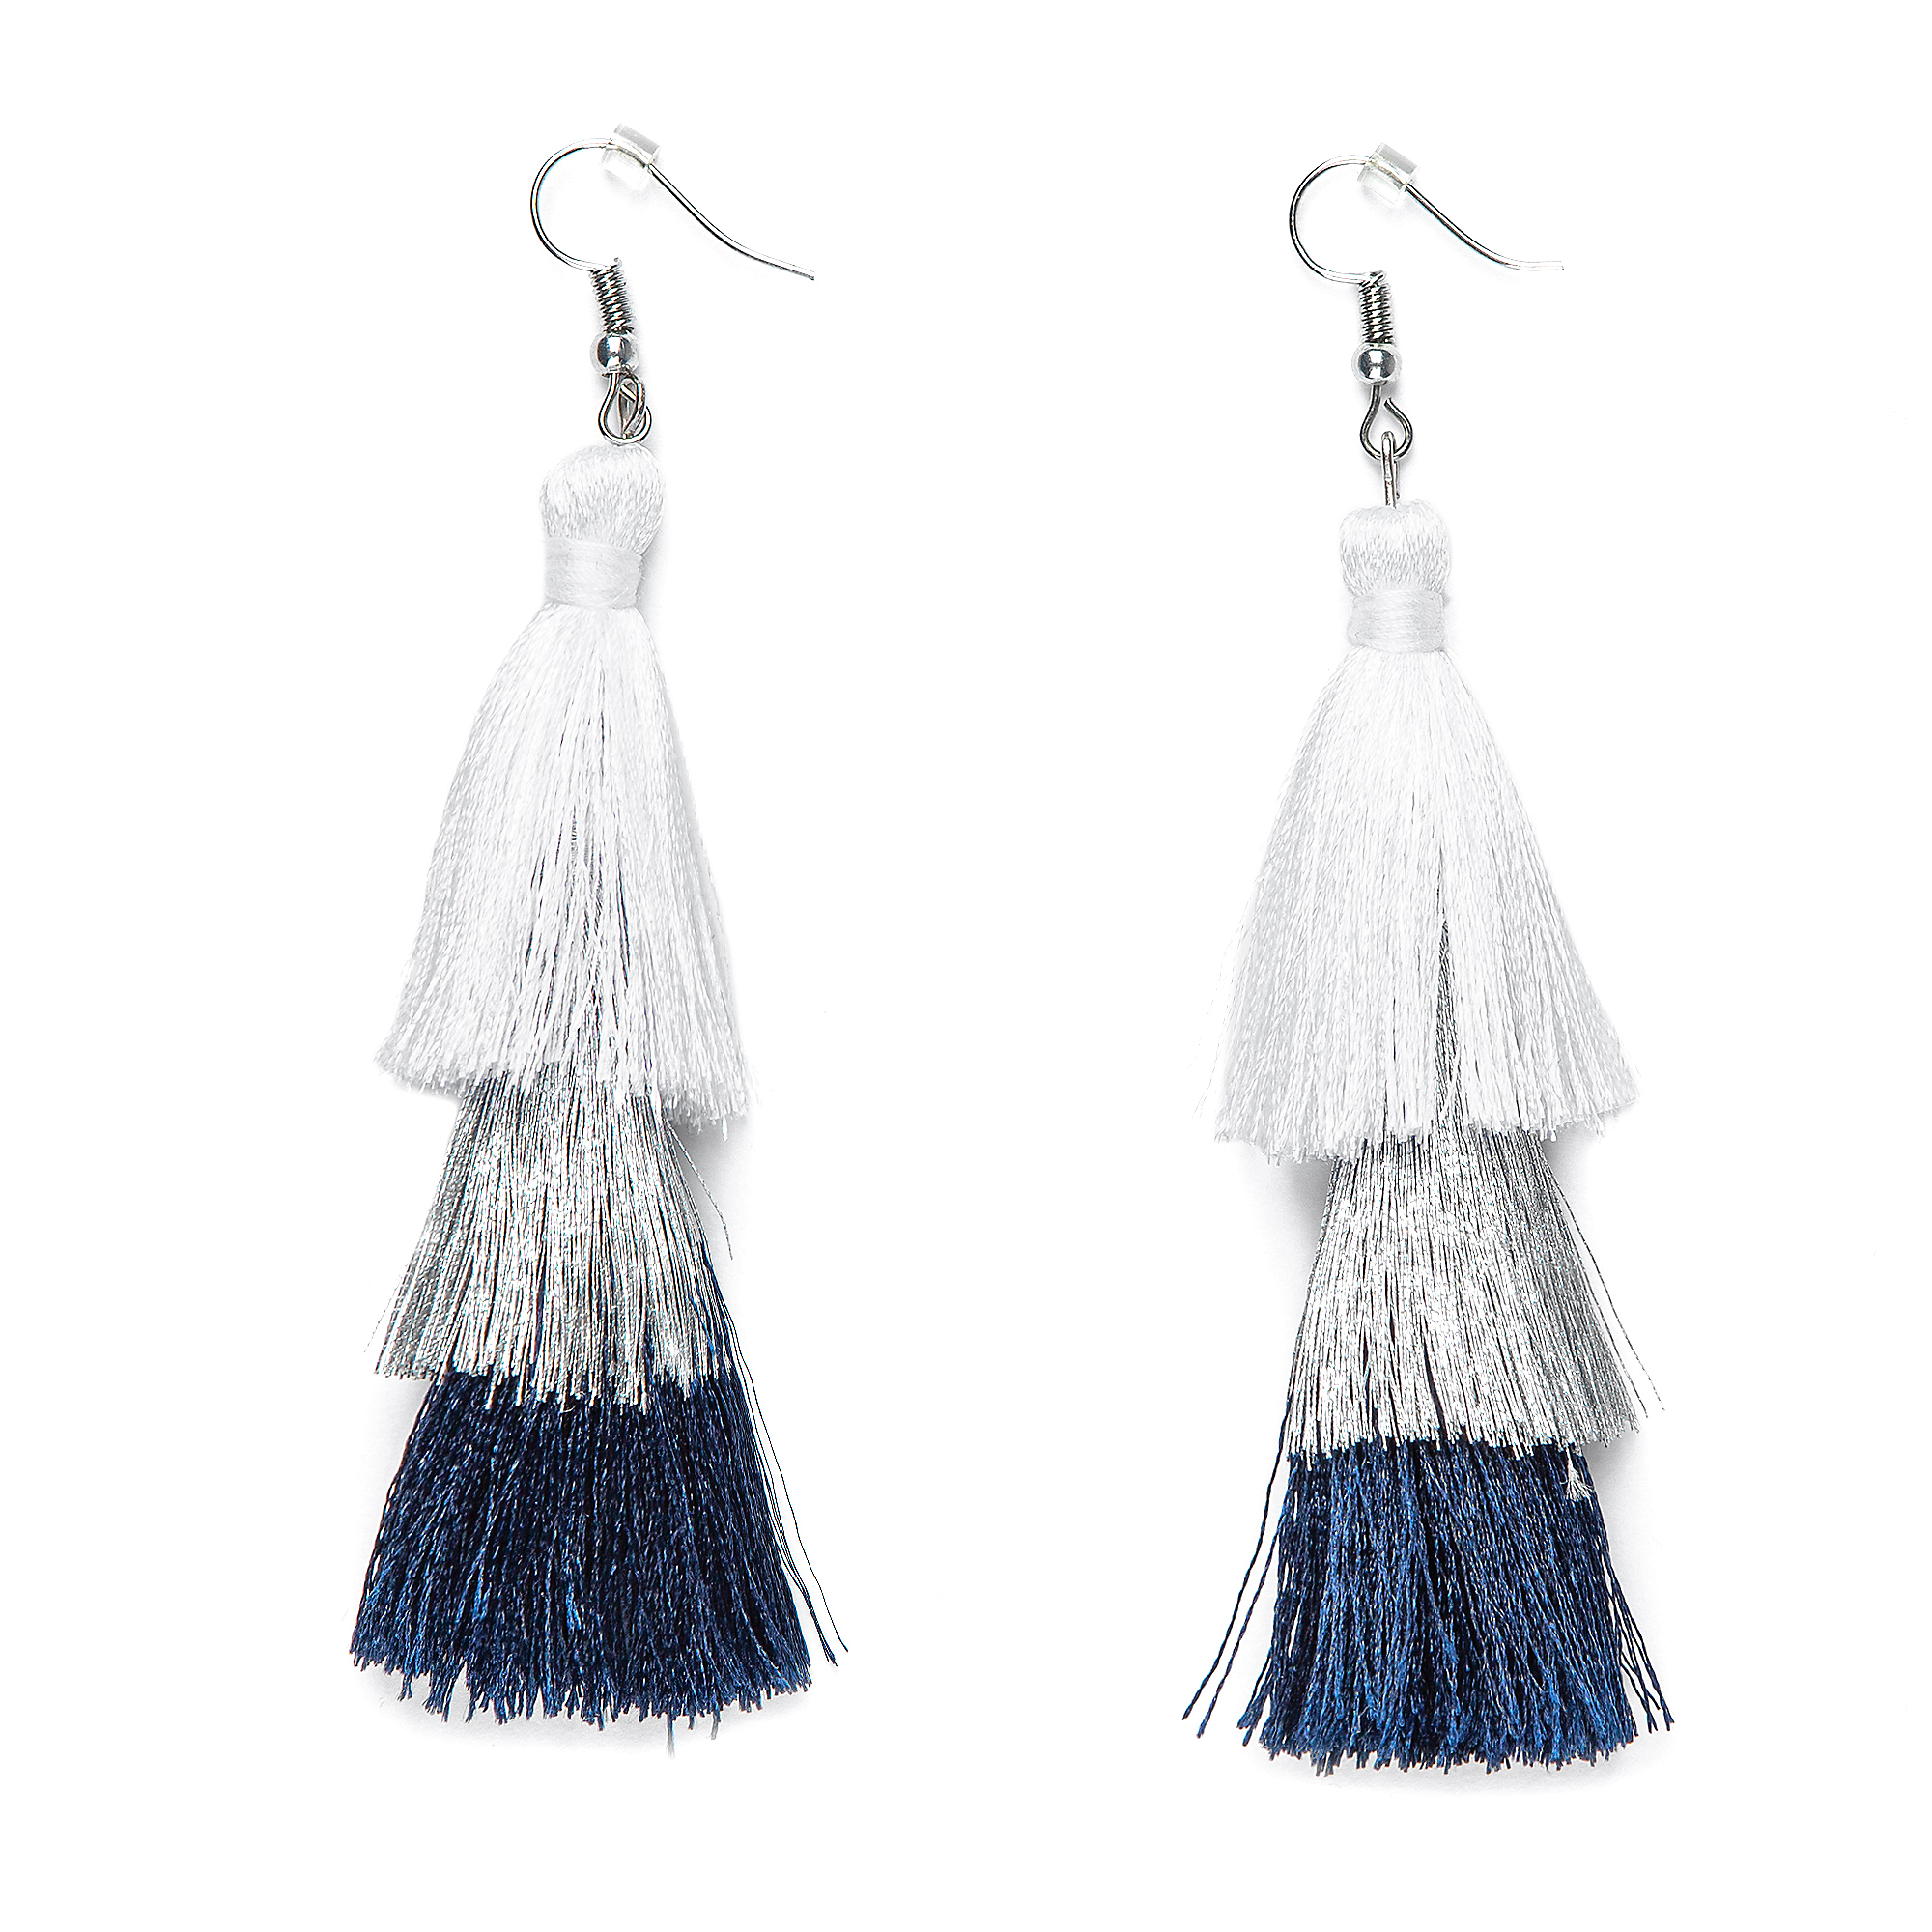 Studio Sheer Gear 3-Tier Tassel Earrings